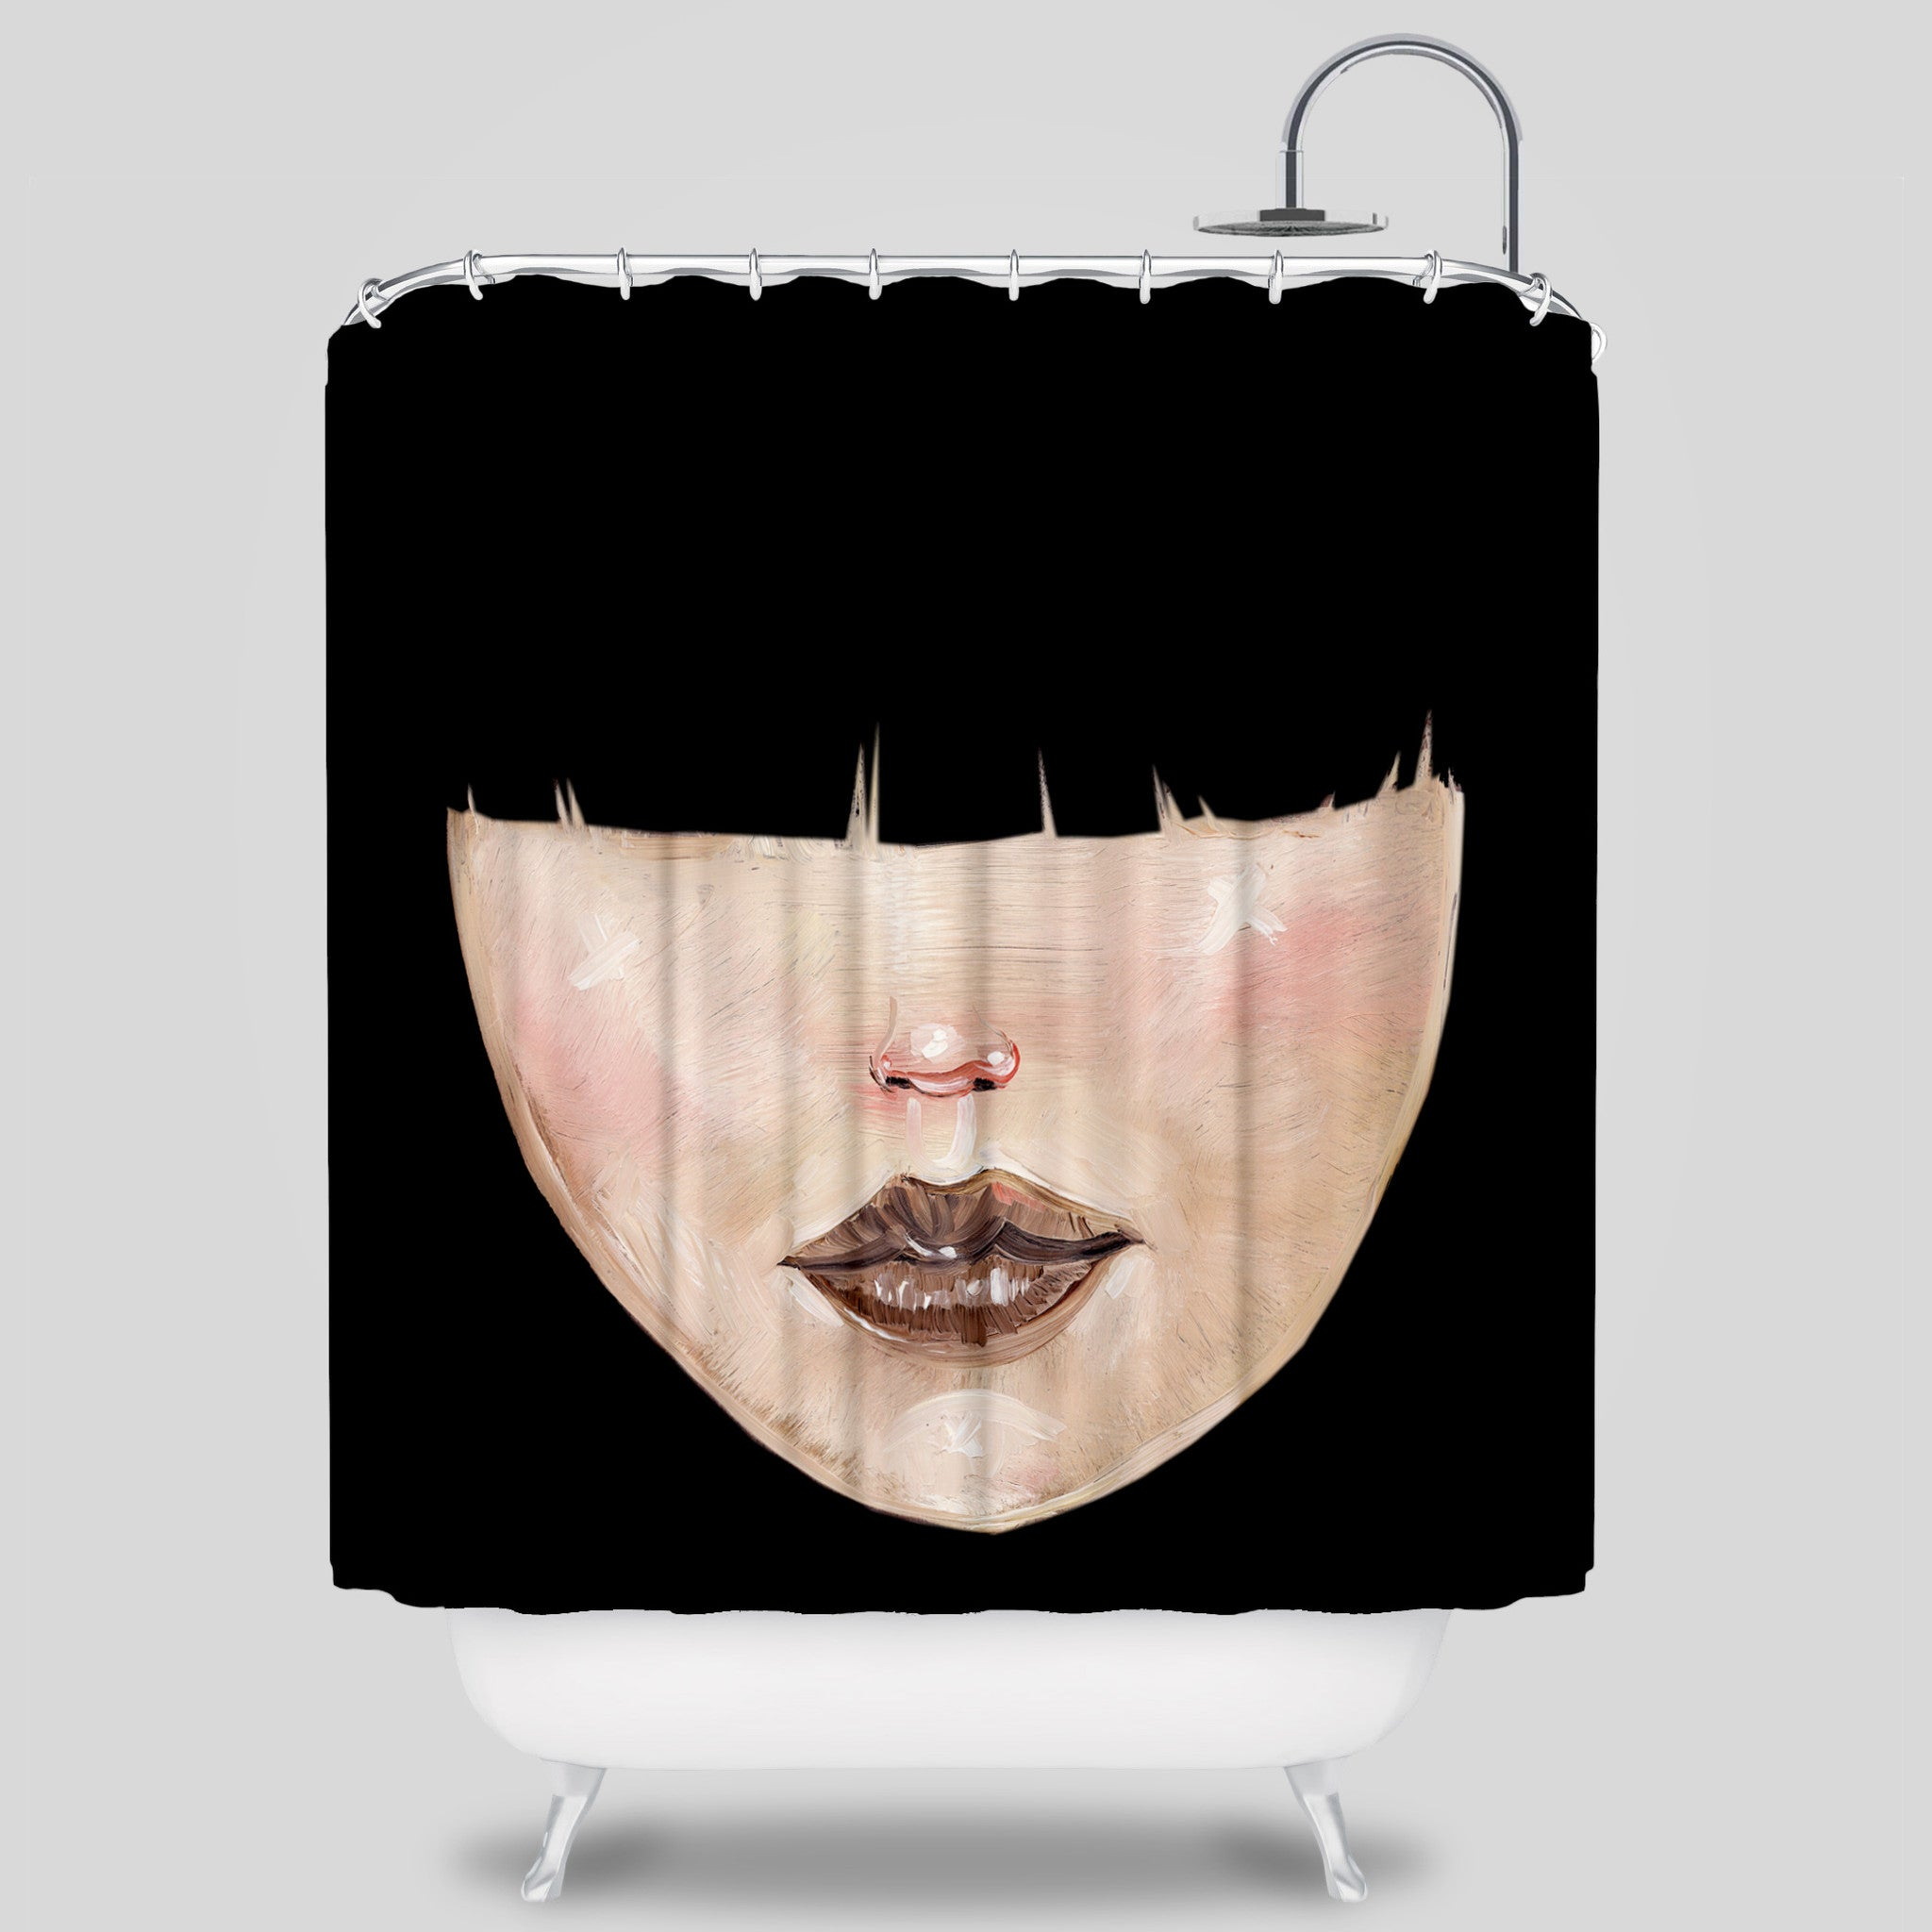 BANGS SHOWER CURTAIN By DAVID CHOE